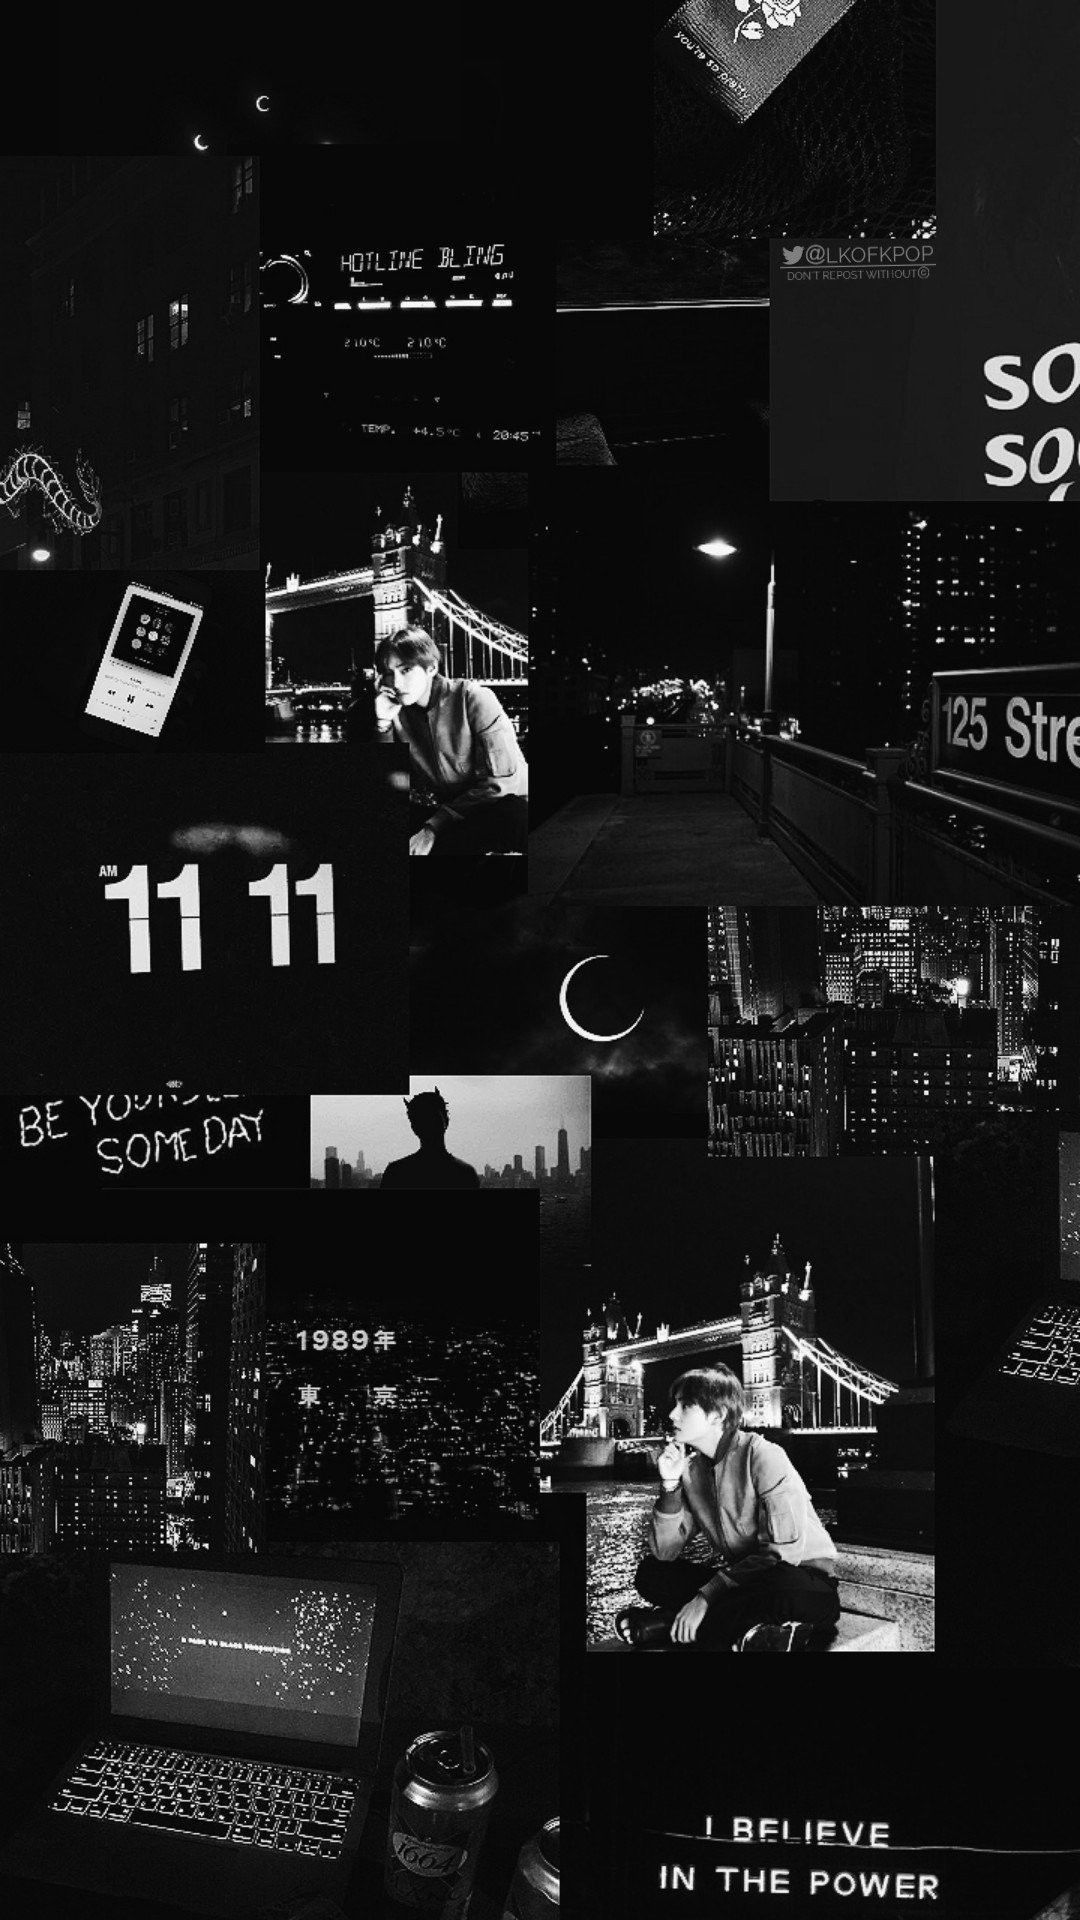 Pin By Gomes On Bts Wallpaper Tumblr Black Aesthetic Wallpaper Dark Wallpaper Iphone Aesthetic Pastel Wallpaper